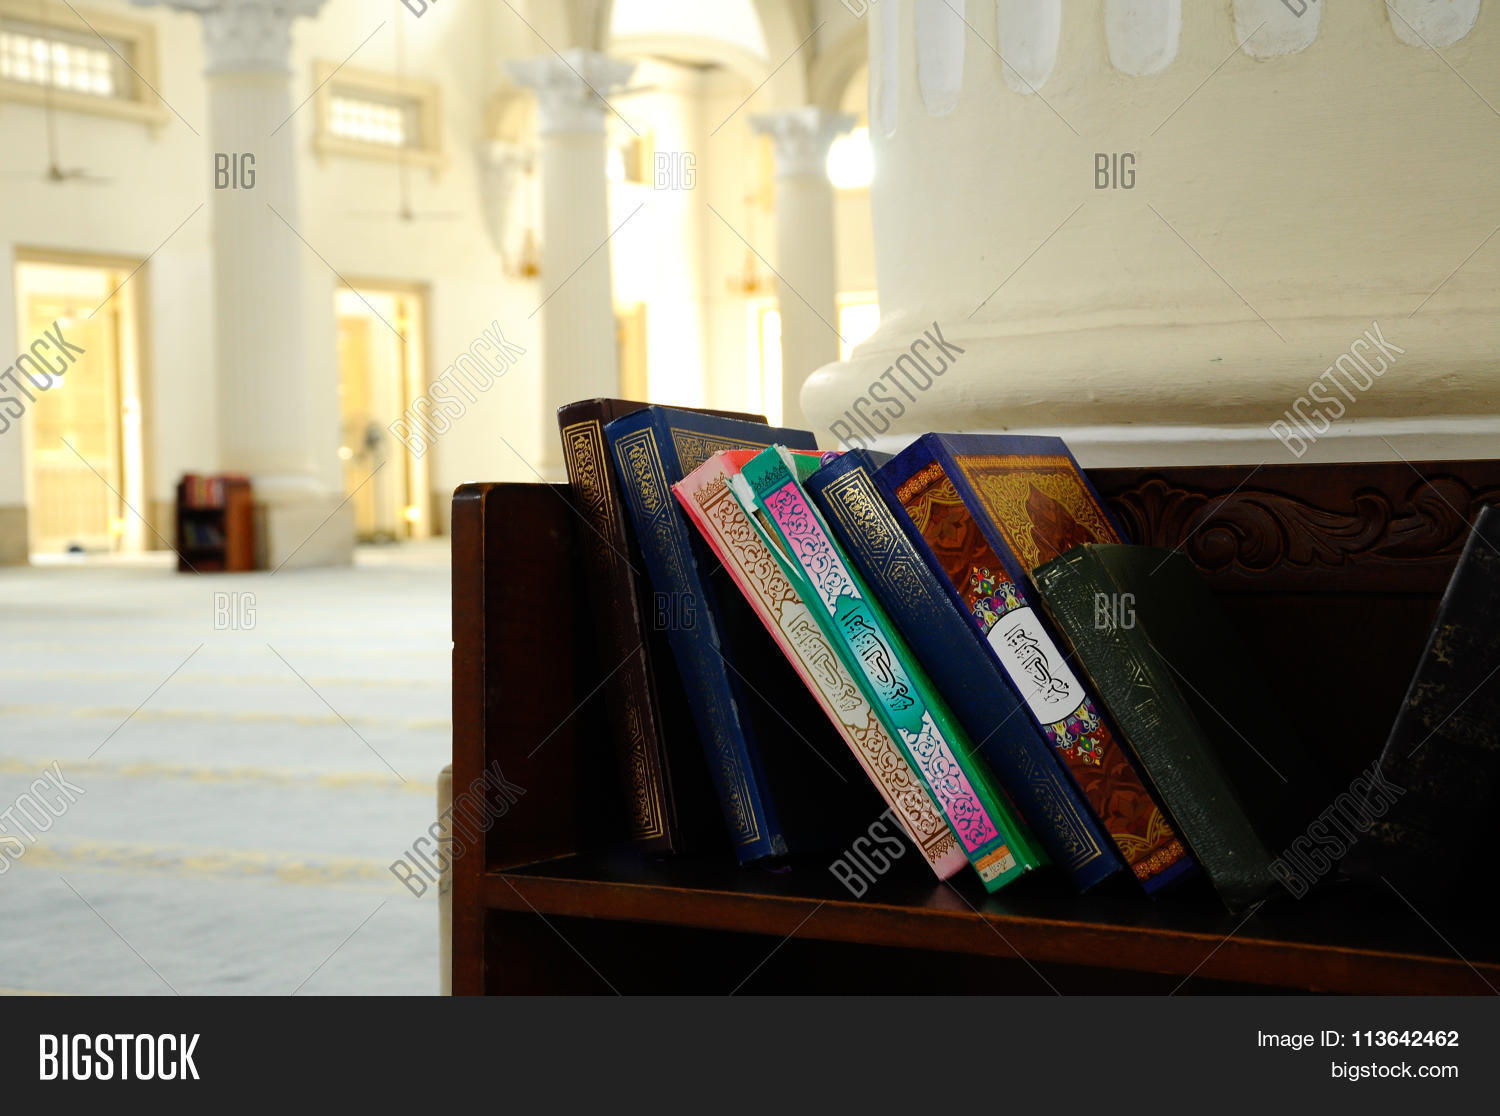 allah,arab,arabic,background,book,carpet,color,cosiness,document,east,education,equipment,ethnic,faith,follow,holder,holy,islam,islamic,khat,koran,learn,lectern,letter,light,malaysia,mosque,muslim,nobody,pattern,positive,pray,prayer,quran,reading,religion,source,student,symbol,text,traditional,worship,zikr